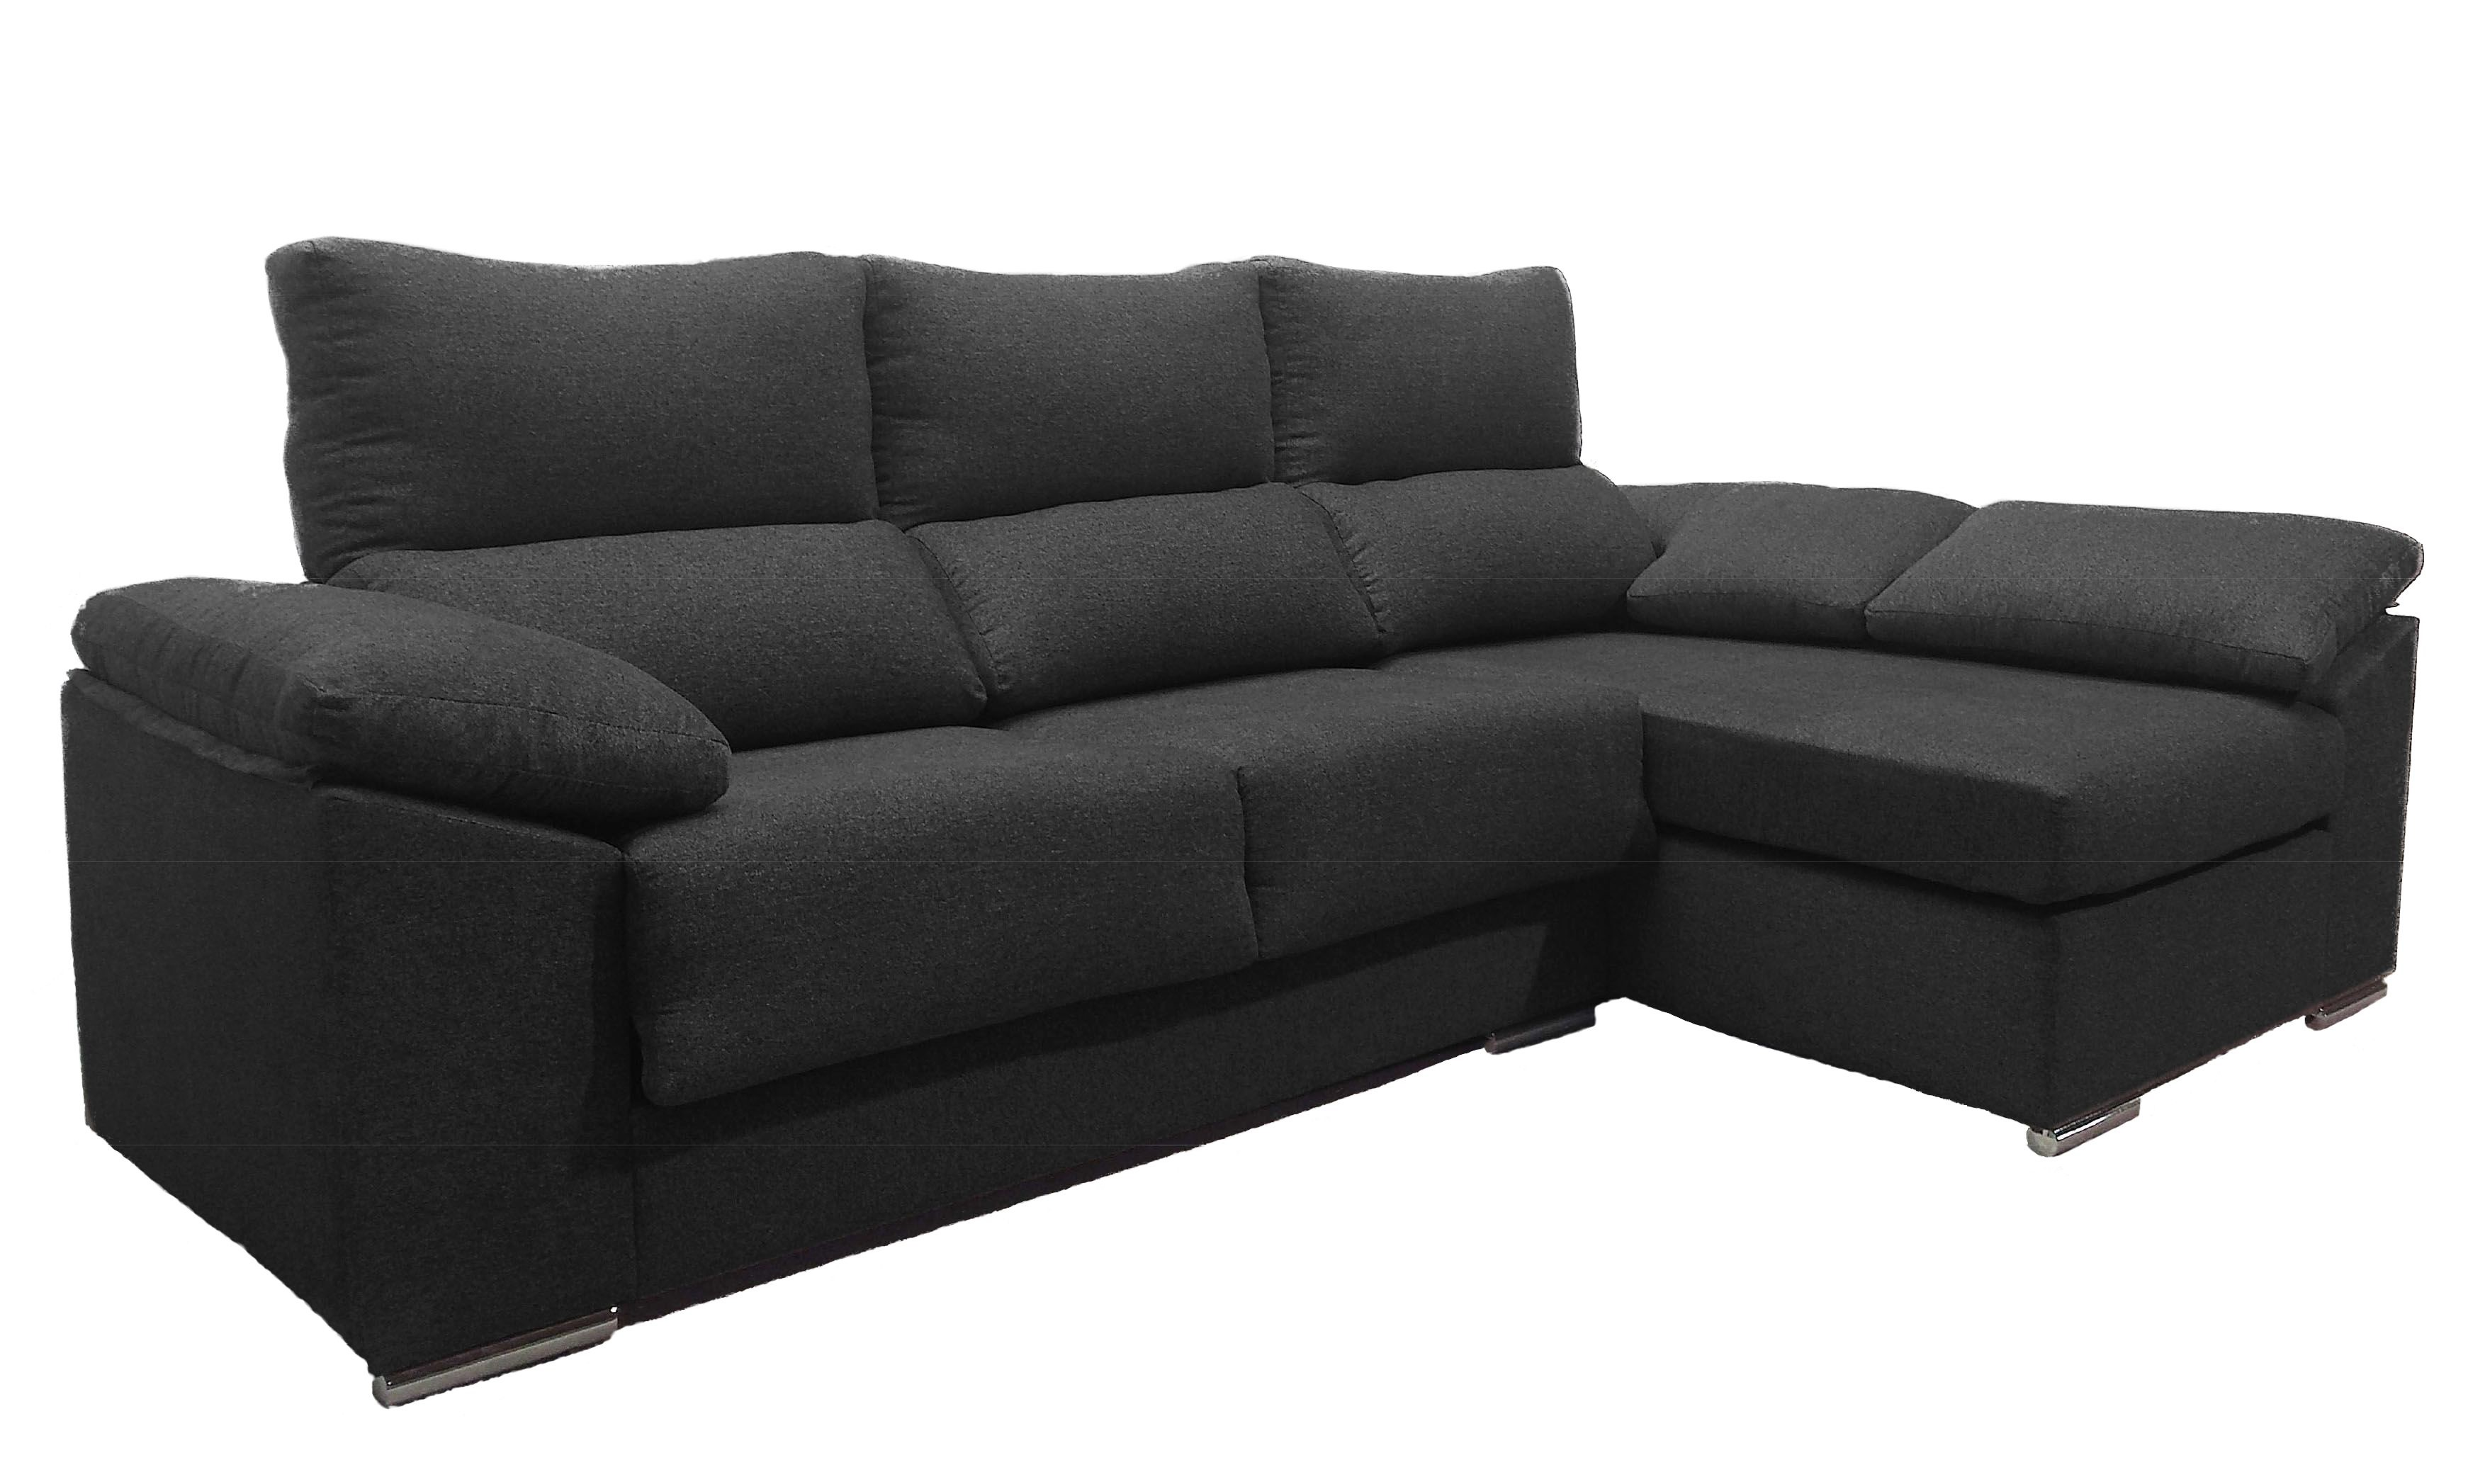 Sofas com chaise longue baratos sofa the honoroak for Oferta sofa cama chaise longue